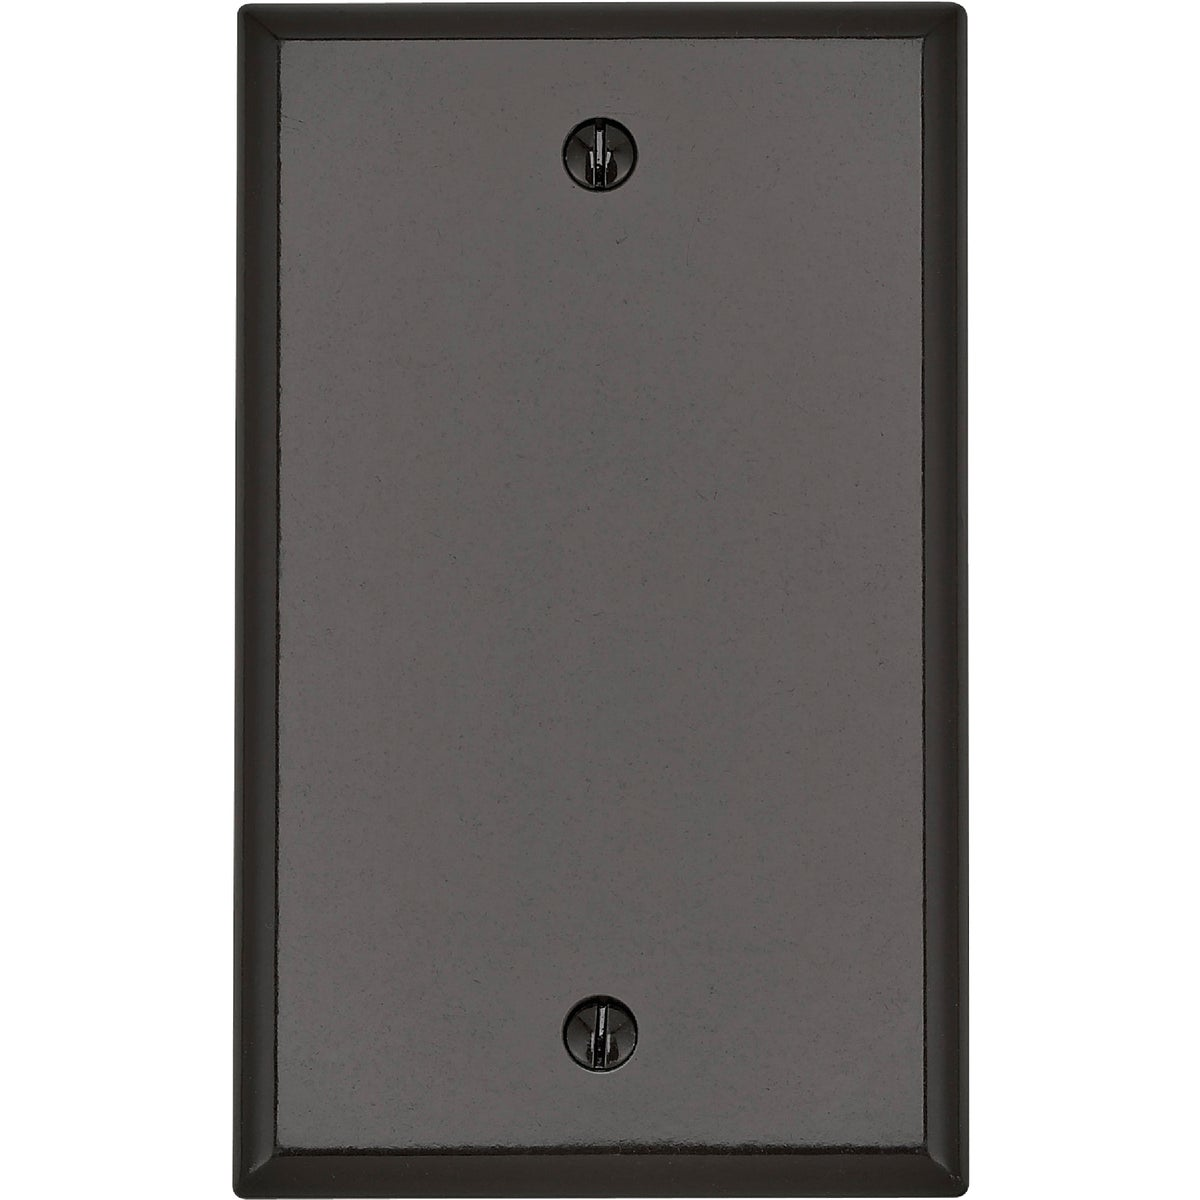 BRN BLANK WALL PLATE - 85014 by Leviton Mfg Co